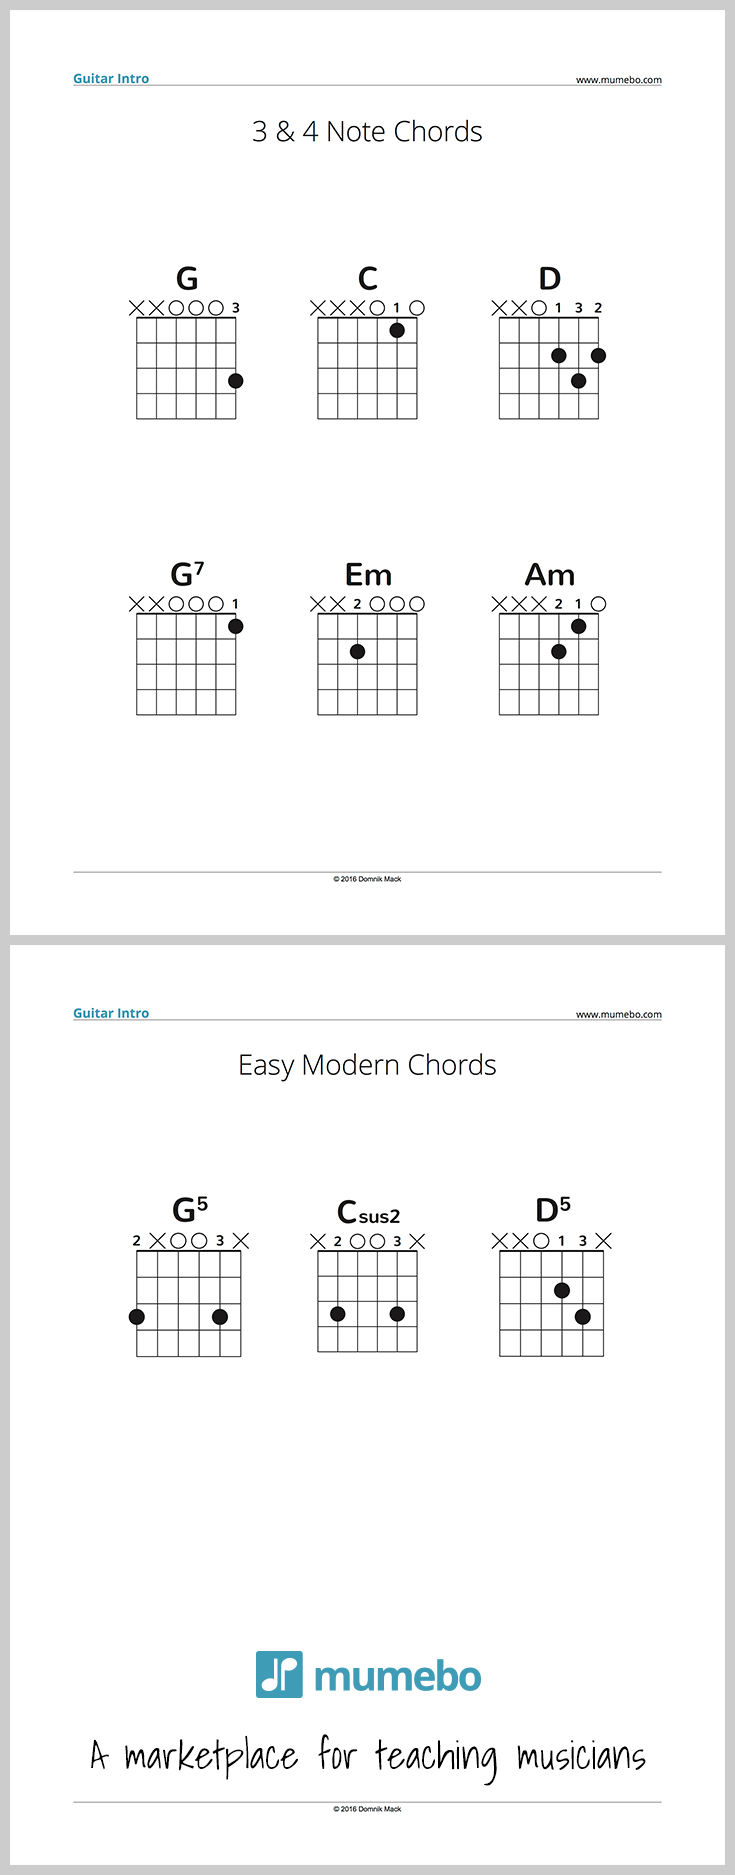 Free pdf sample for guitar teachers simple chords for a first free pdf sample for guitar teachers simple chords for a first guitar lesson 3 hexwebz Image collections